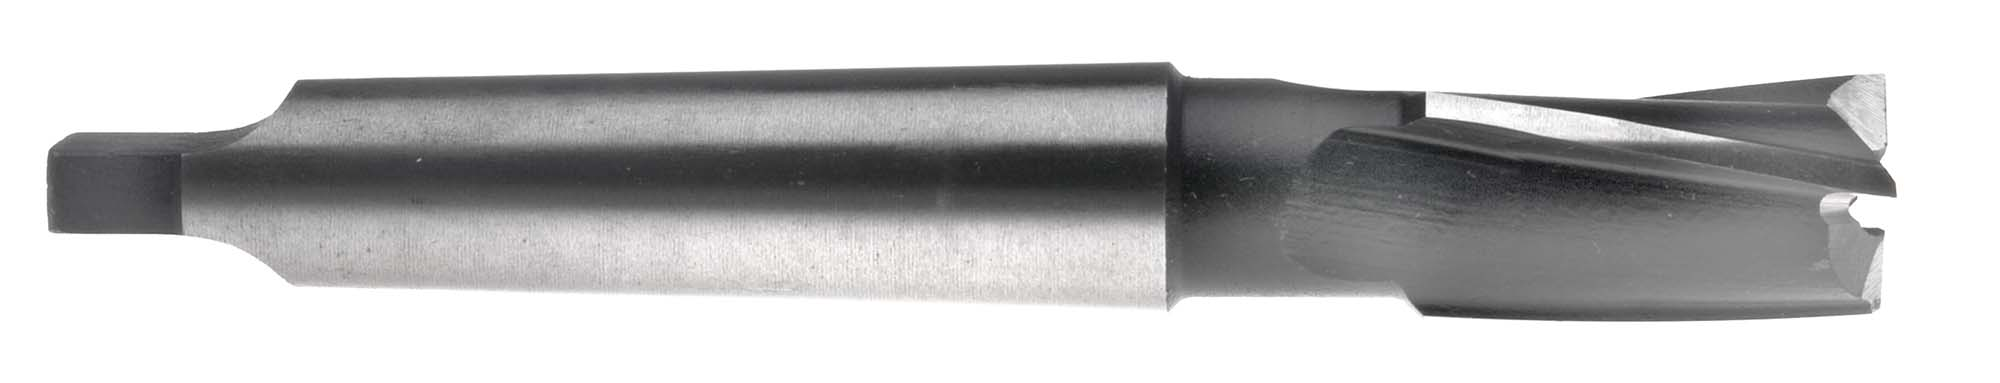 "1-11/16"" Taper Shank Counterbore, Interchangeable Pilot Type, High Speed Steel"